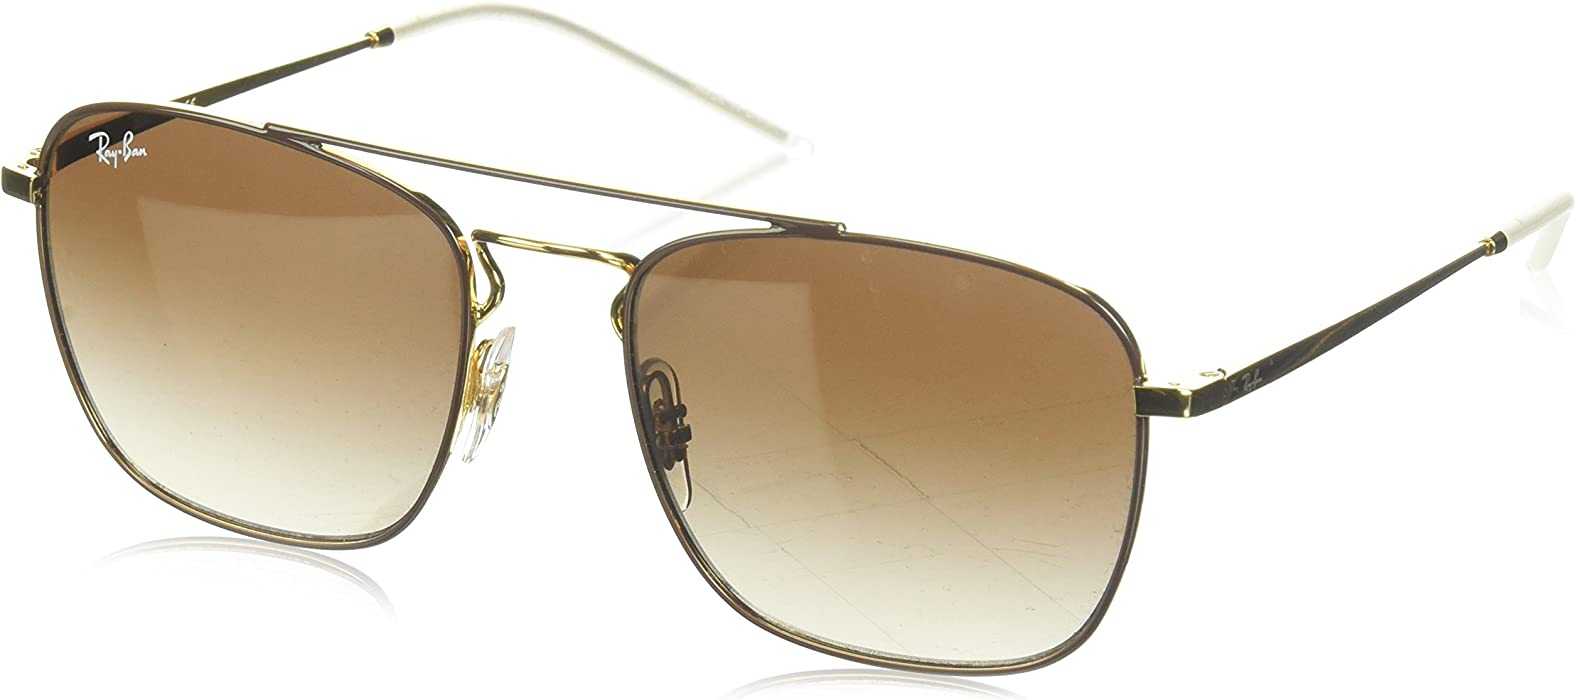 8a3be5bbb41 RAYBAN Men s 0RB3588 905513 55 Sunglasses